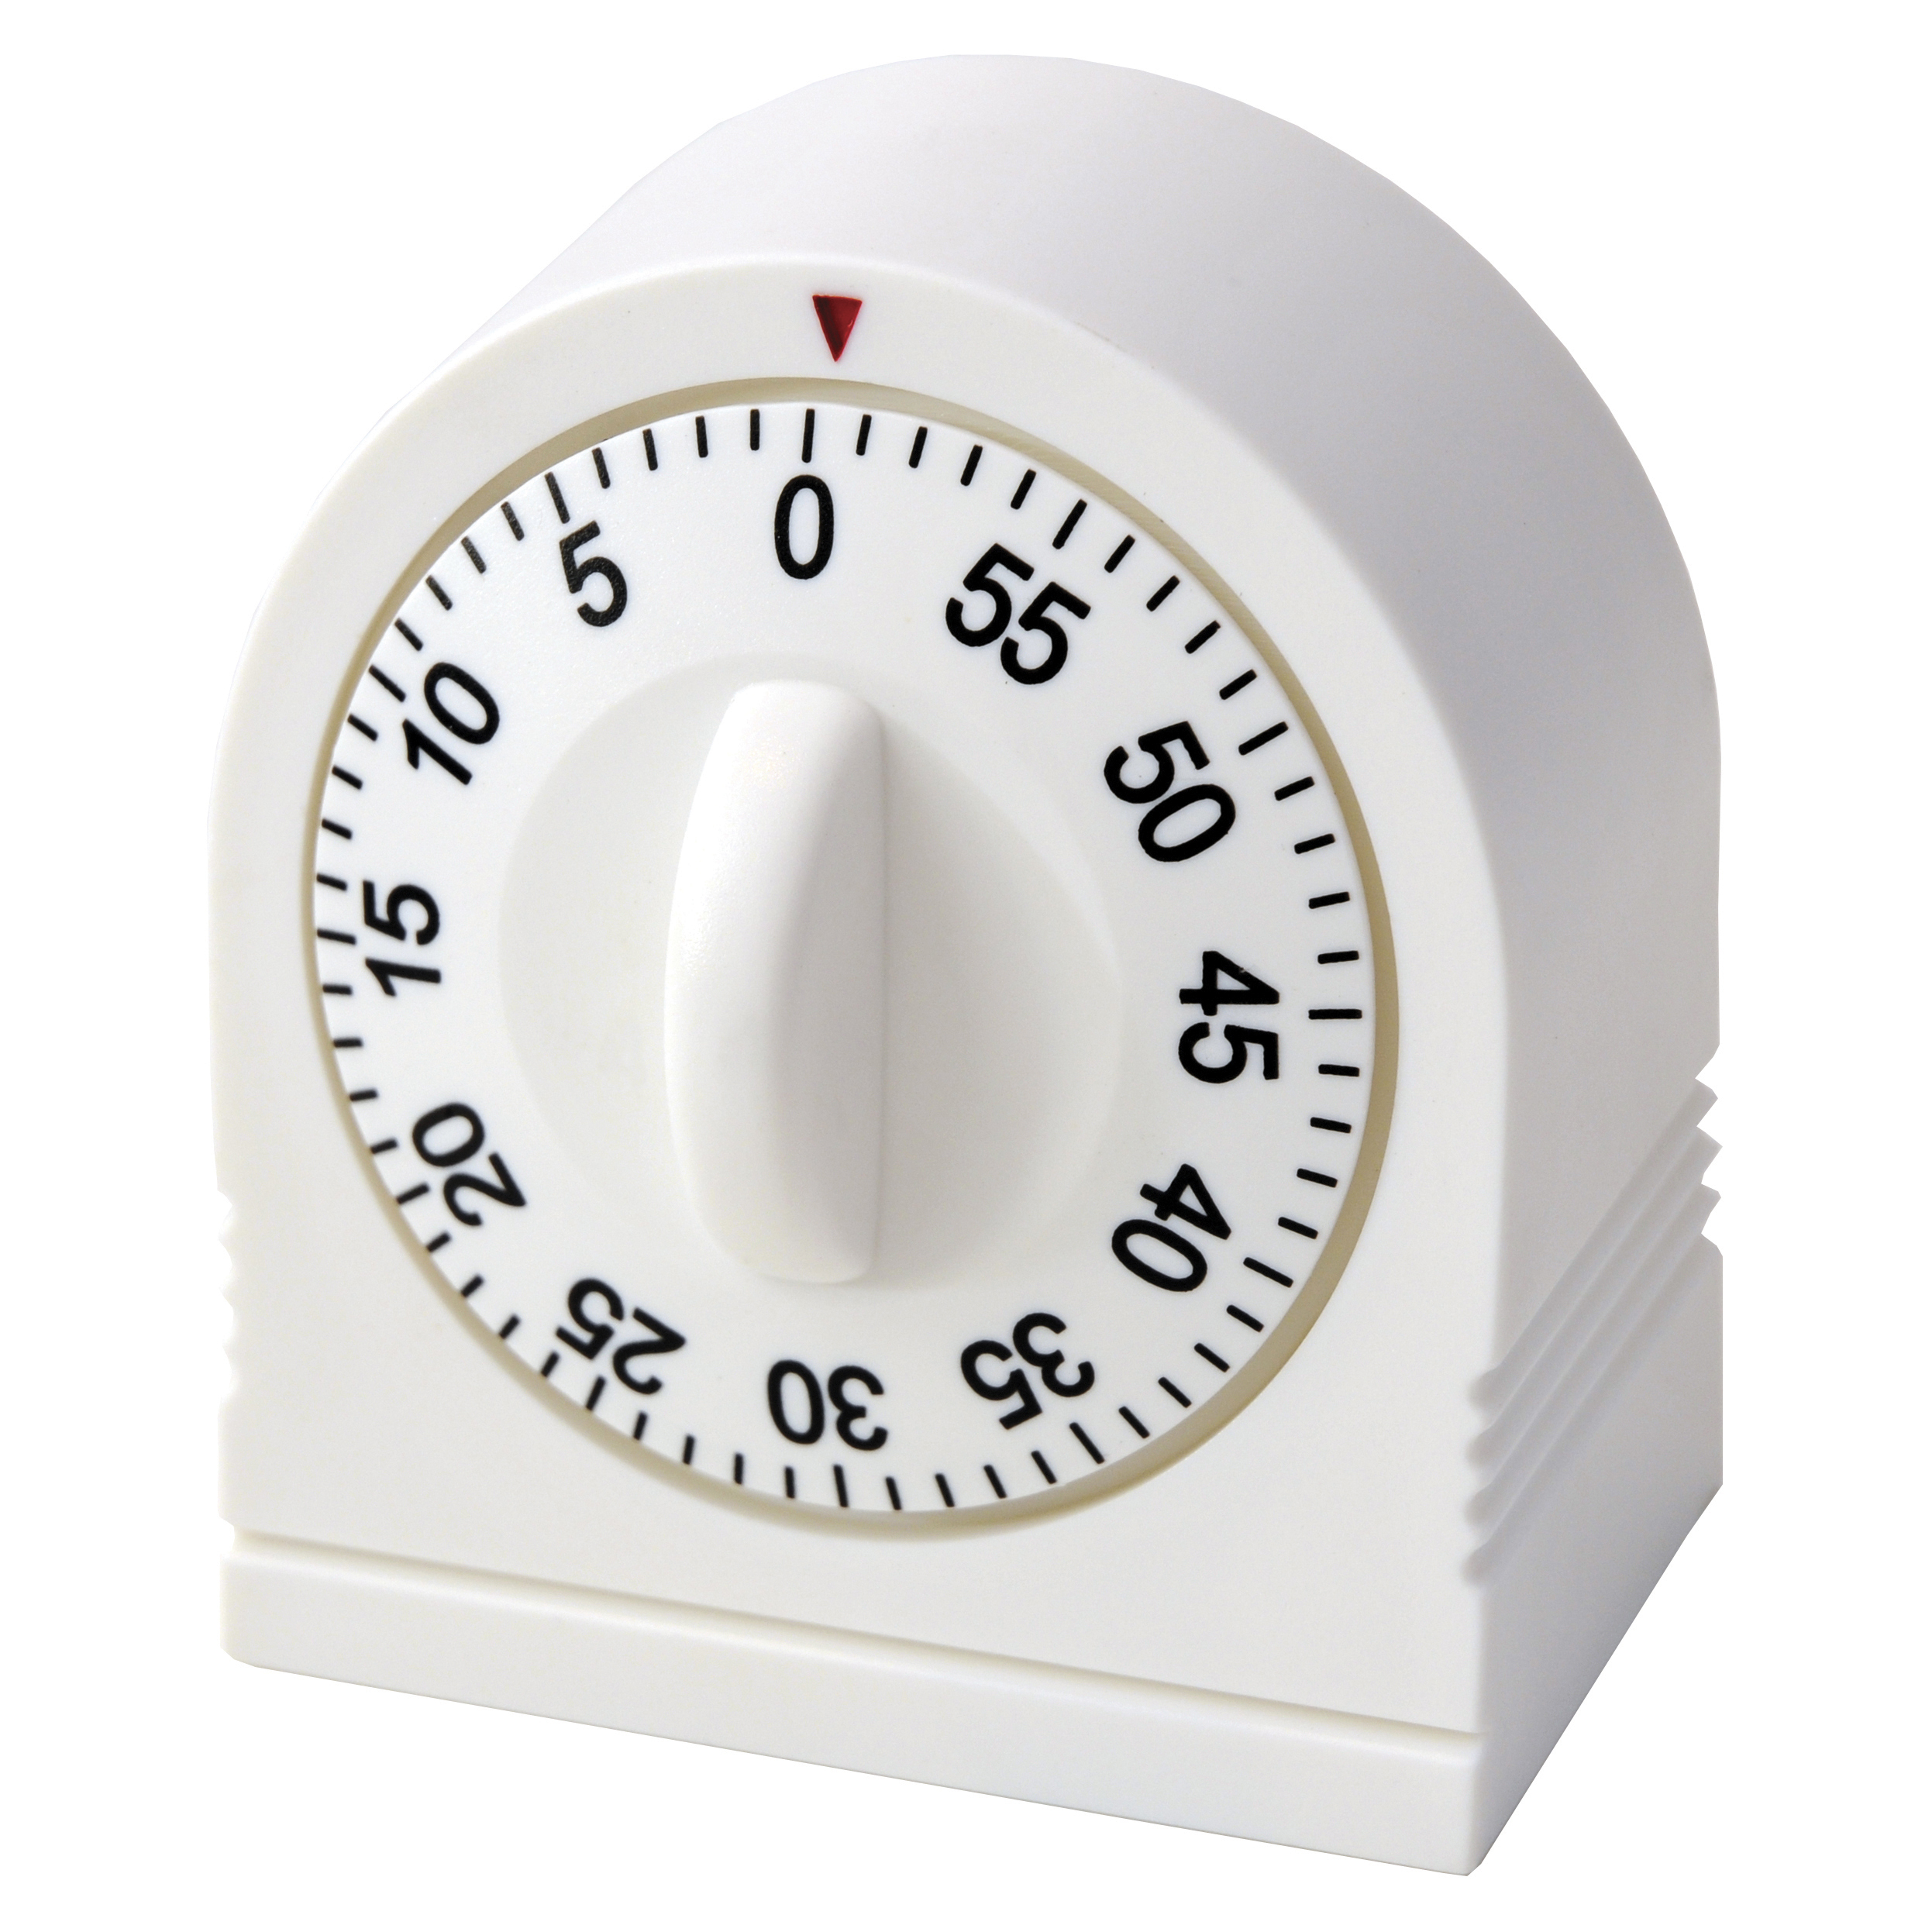 kitchen timer compost container acurite white walmart com